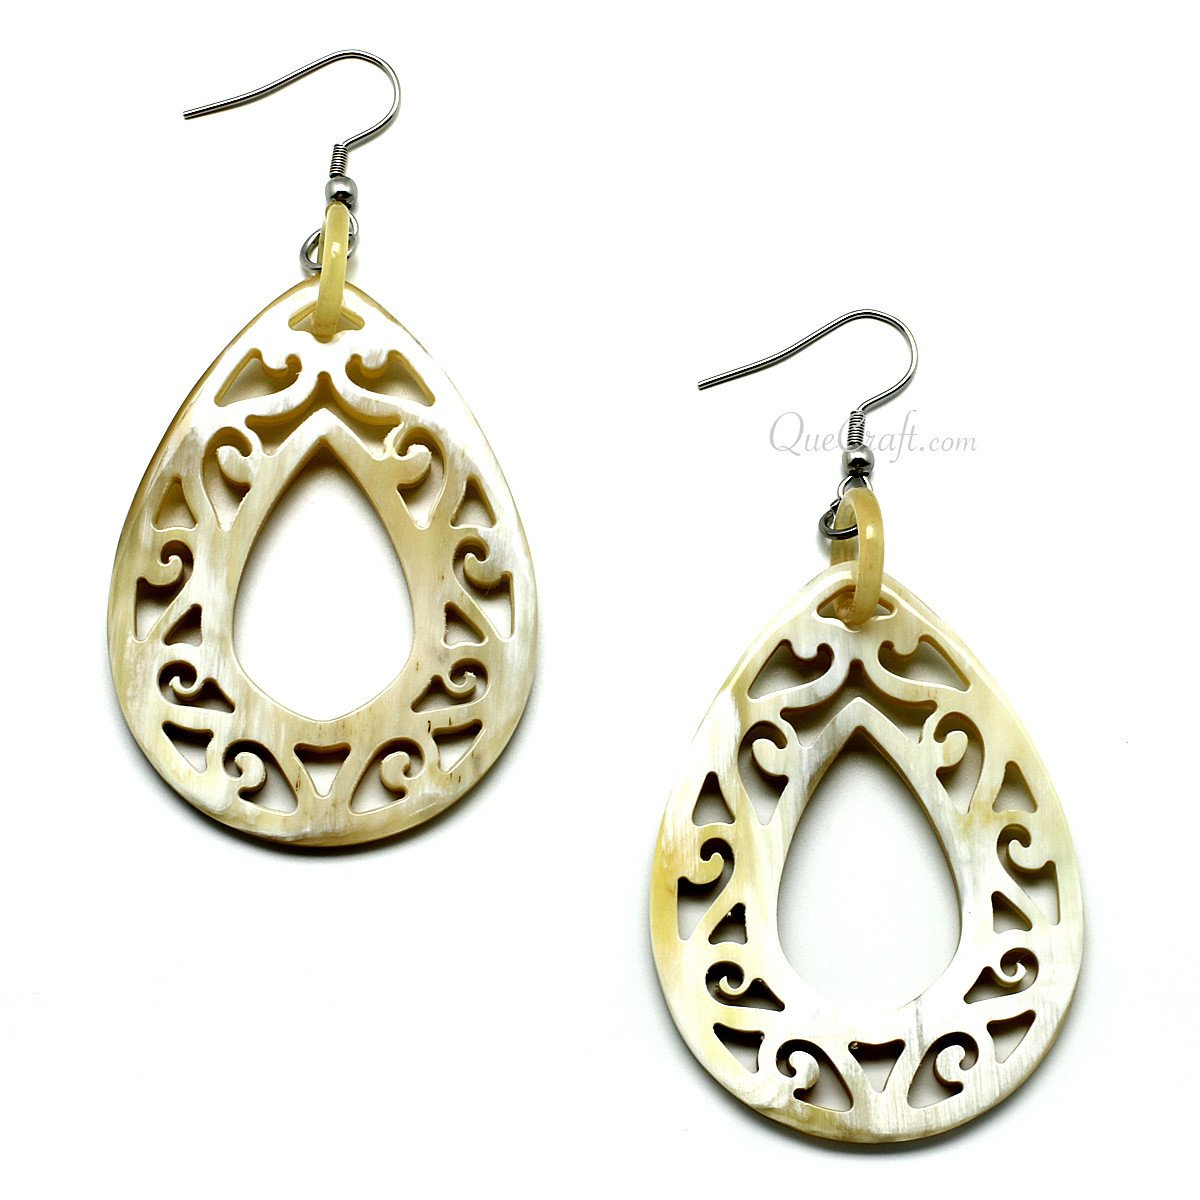 Horn Earrings #11254 - HORN.JEWELRY by QueCraft